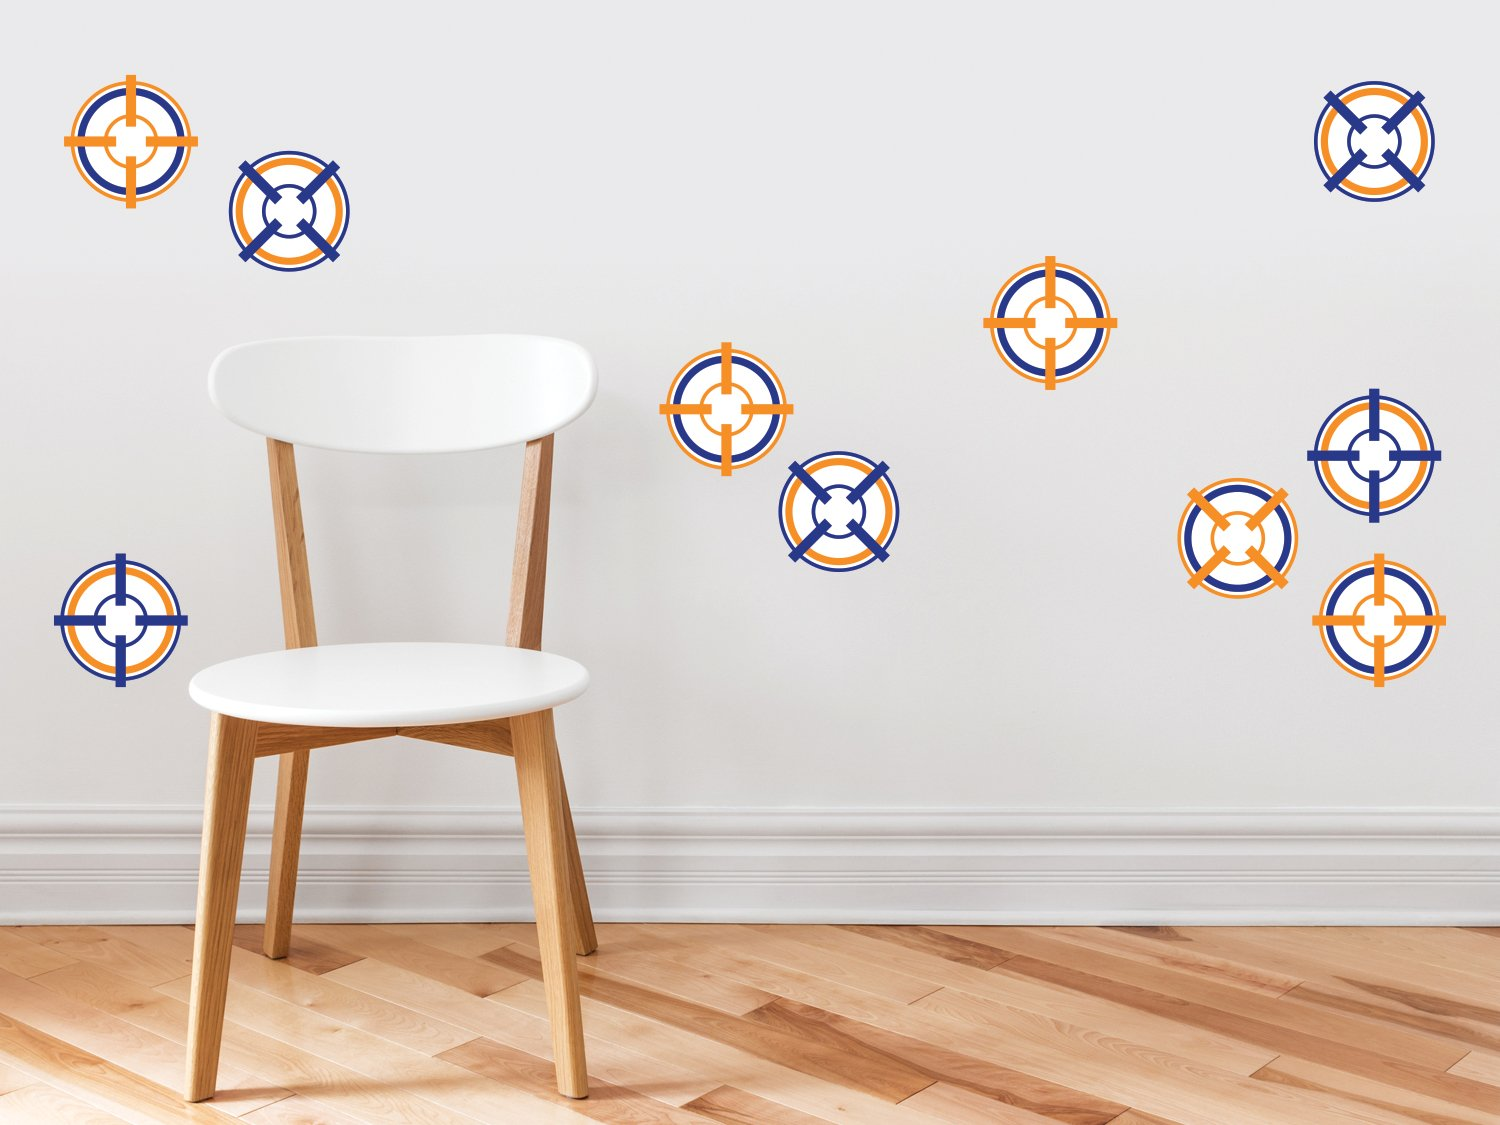 Bulls Eye Target Wall Decals - Set of 10 Soft Bullet Darts Targets - Kids Bedroom, Living Room Art Decor, Removable Fabric Wall Stickers